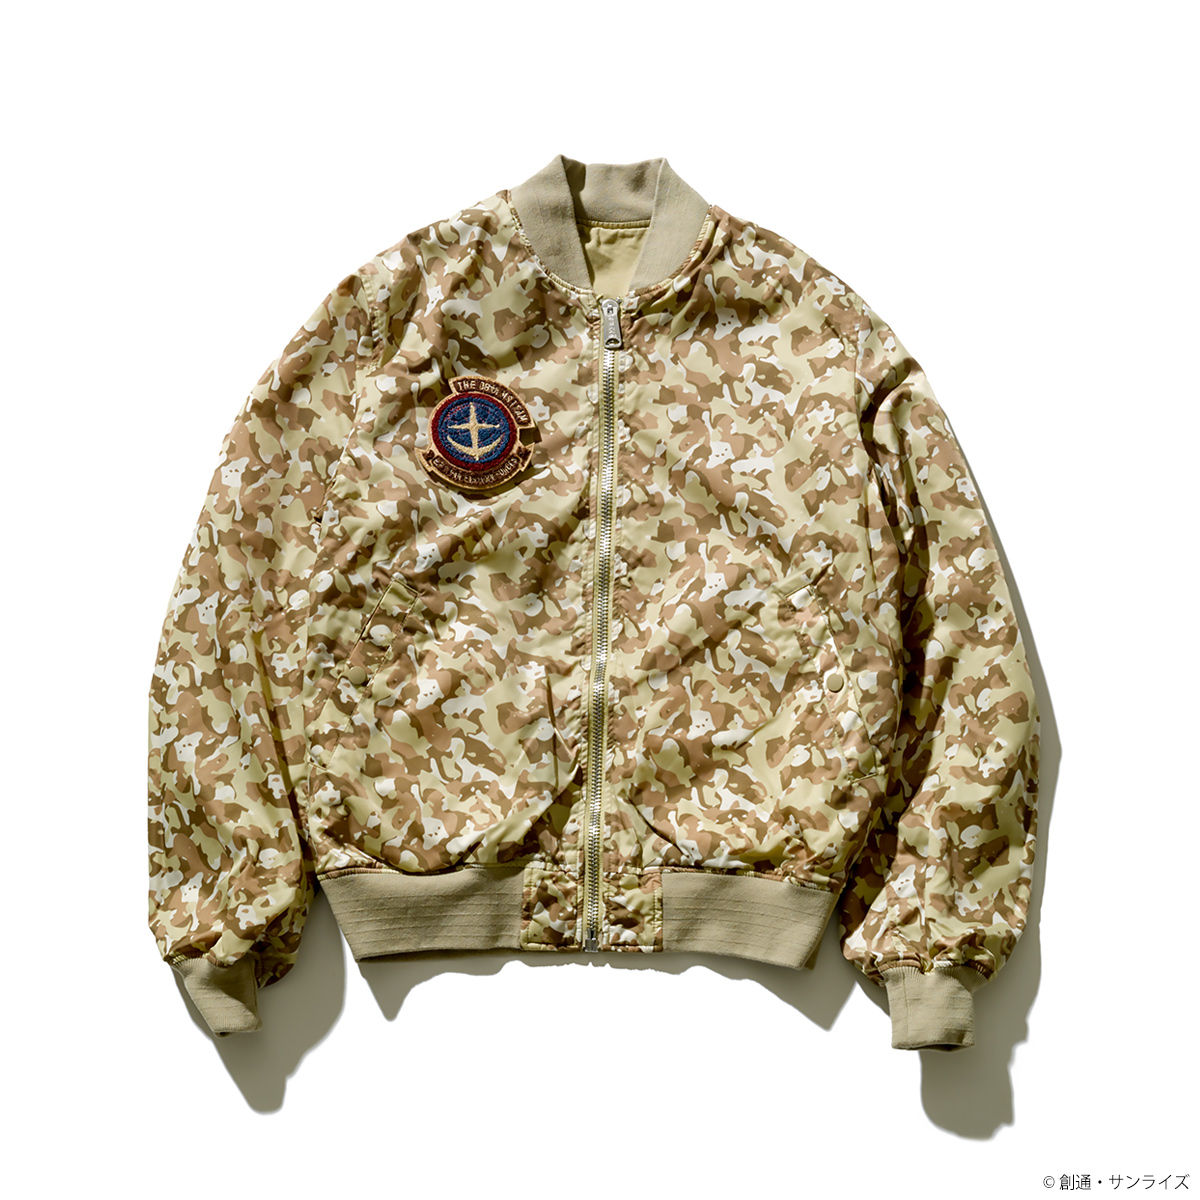 STRICT-G x ALPHA Light MA-1 Bomber Jacket - Mobile Suit Gundam: The 08th MS Team 08th Team Version